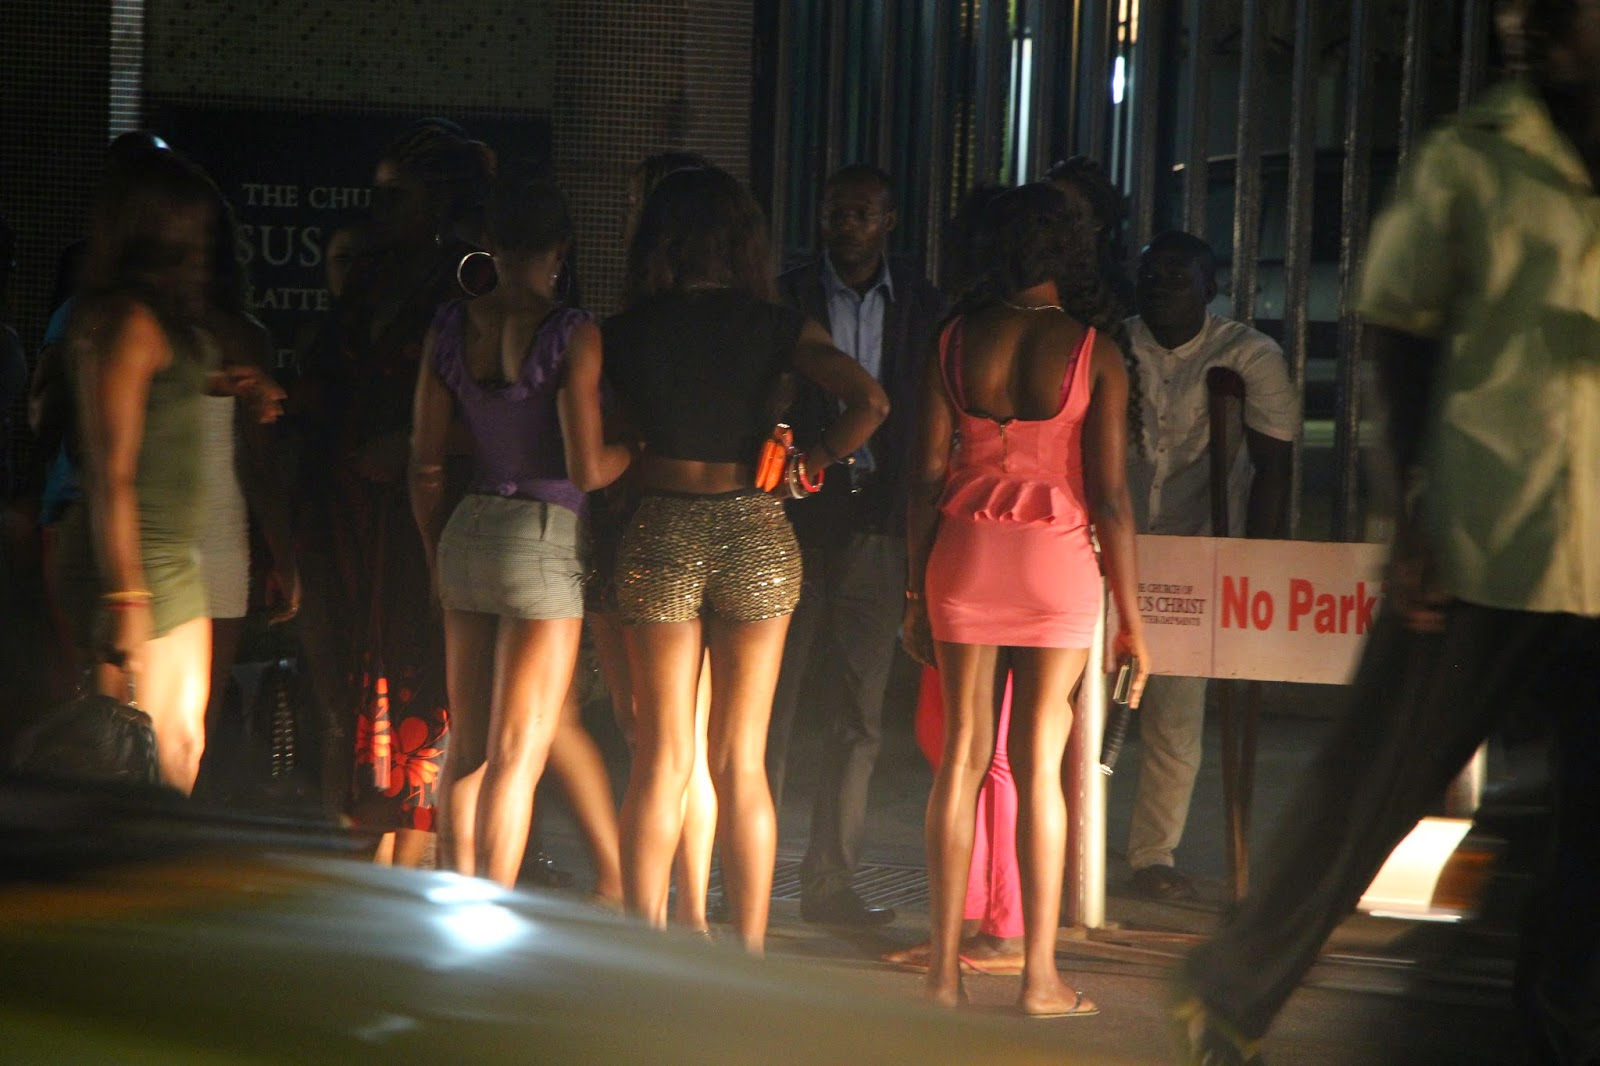 The underage girls of mexico's sex trade